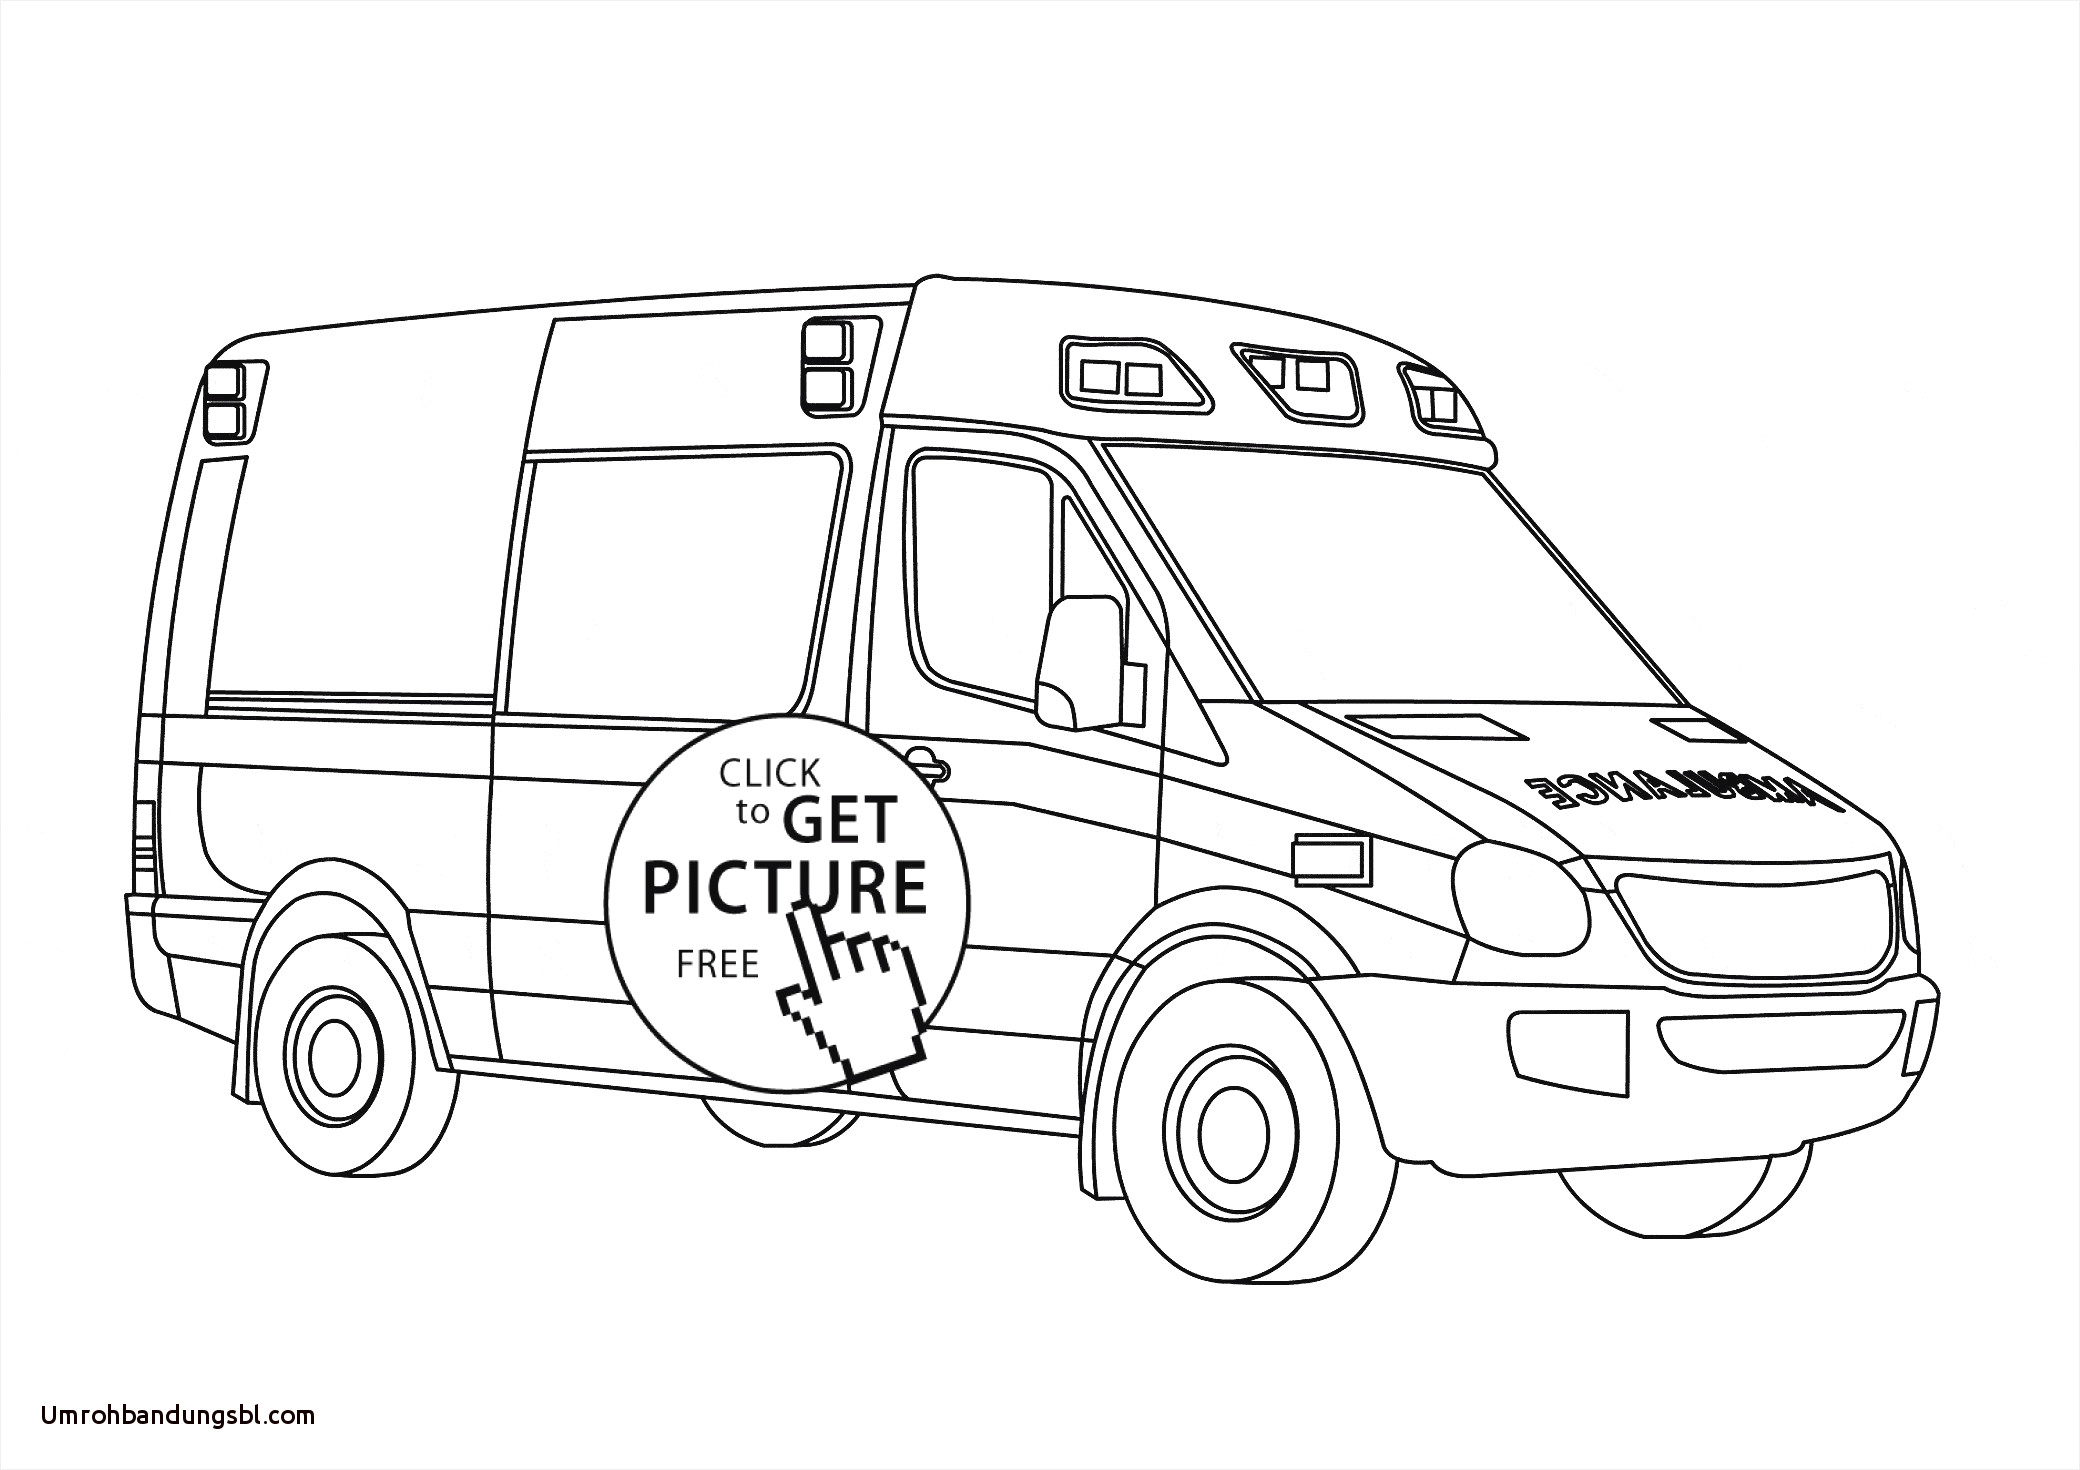 lego police coloring pages Download-Police Coloring Pages to Print Lovely Police Car Coloring Pages Lovely Police Car Coloring Pages 17-a